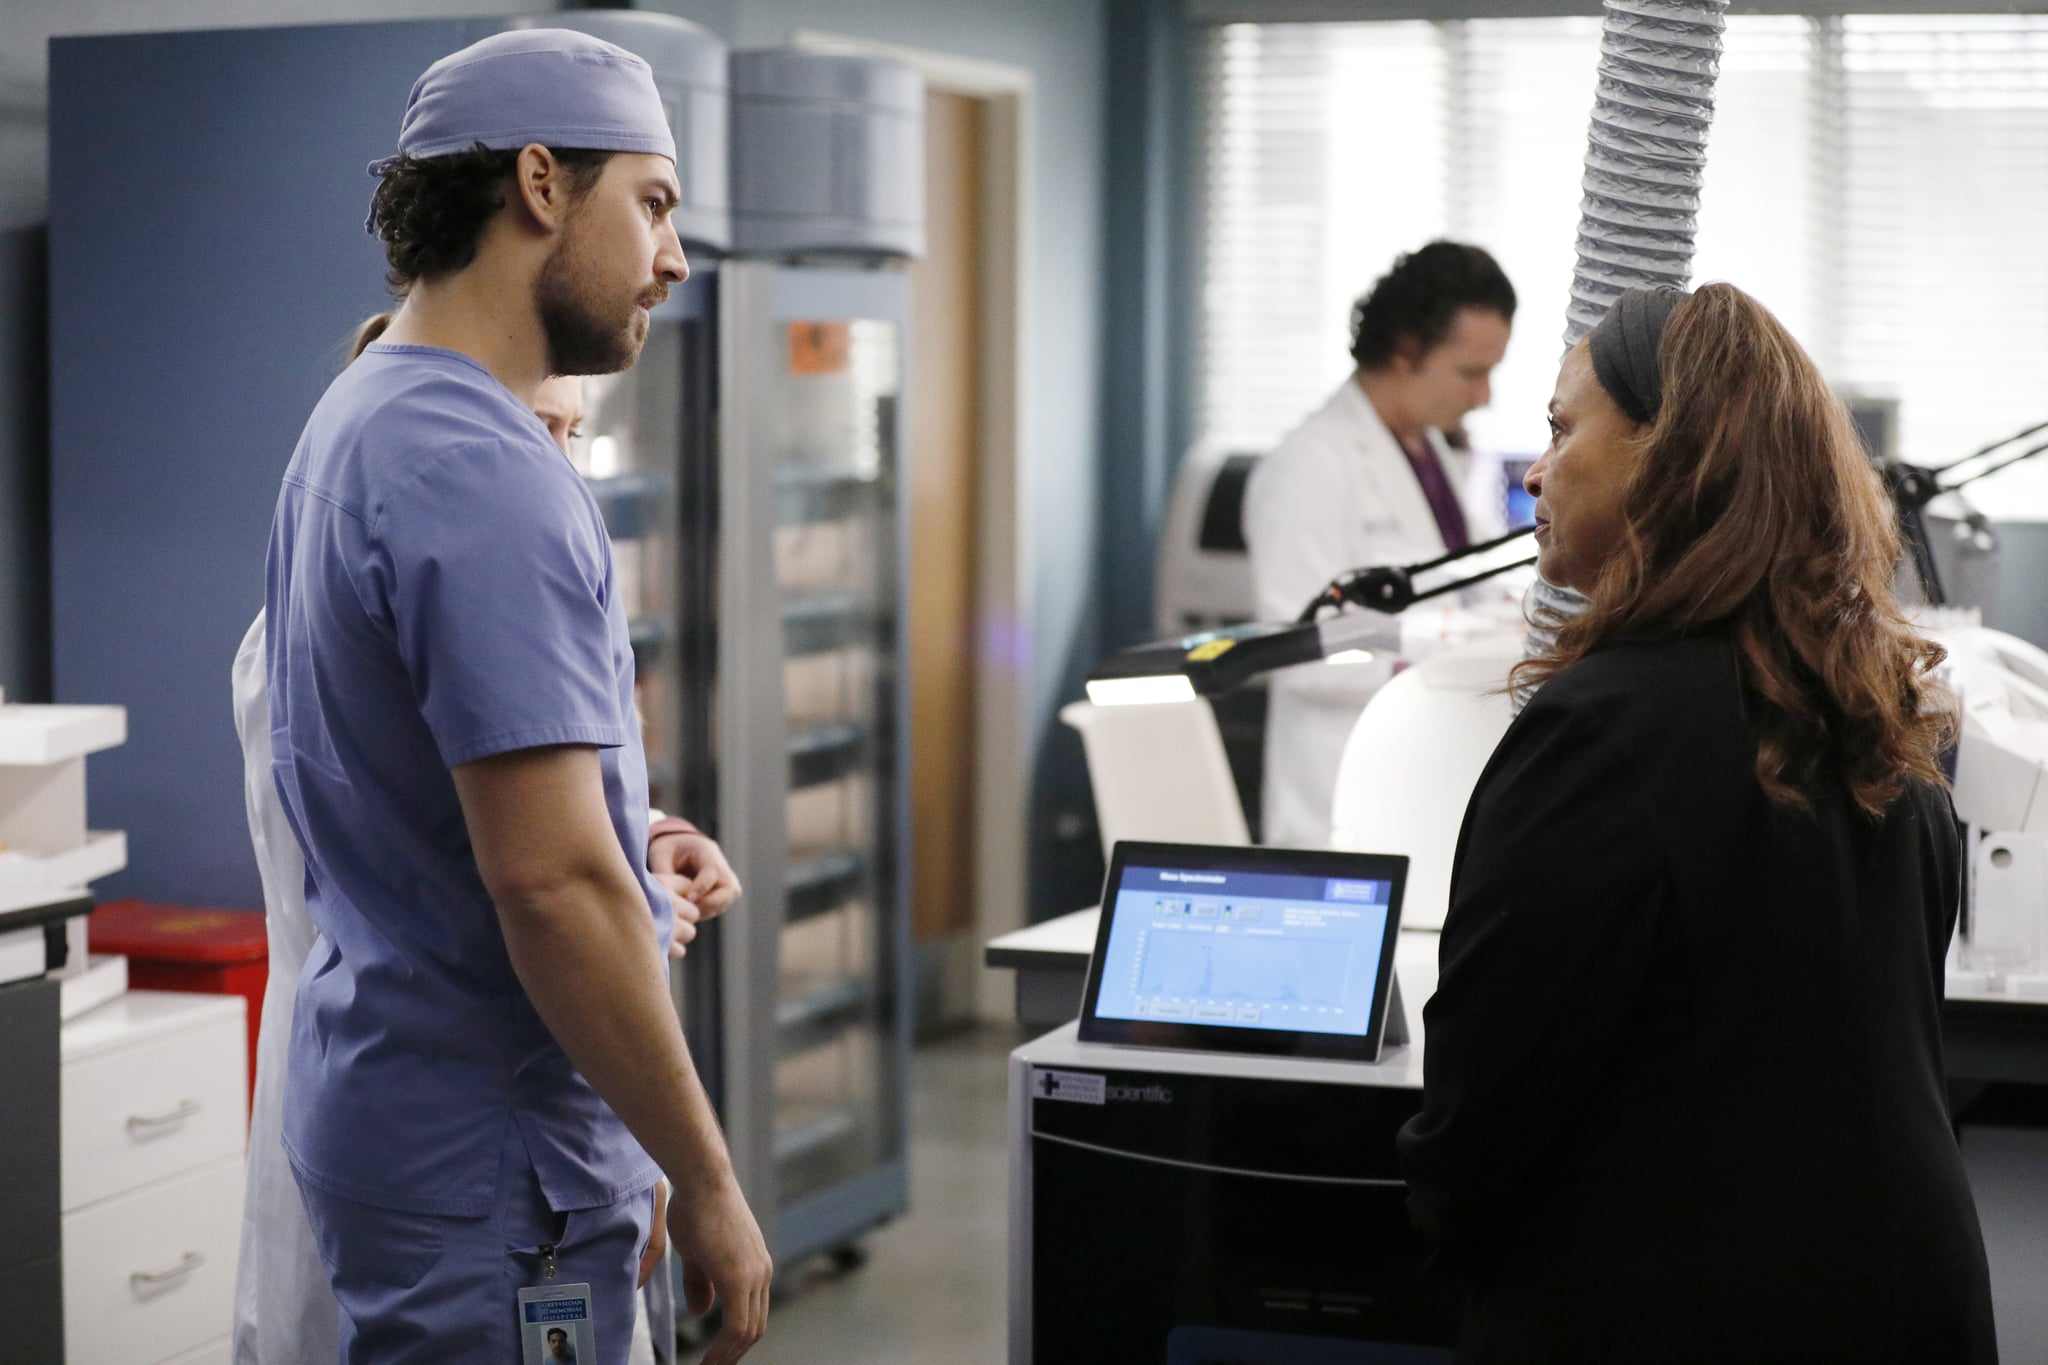 GREYS ANATOMY - Put on a Happy Face  Link tries to convince Amelia to take it easy during the final stage of her pregnancy. Hayes asks Meredith a surprising question, and Owen makes a shocking discovery, on the season finale of Greys Anatomy, THURSDAY, APRIL 9 (9:00-10:01 p.m. EDT), on ABC. (ABC/Raymond Liu)GIACOMO GIANNIOTTI, DEBBIE ALLEN